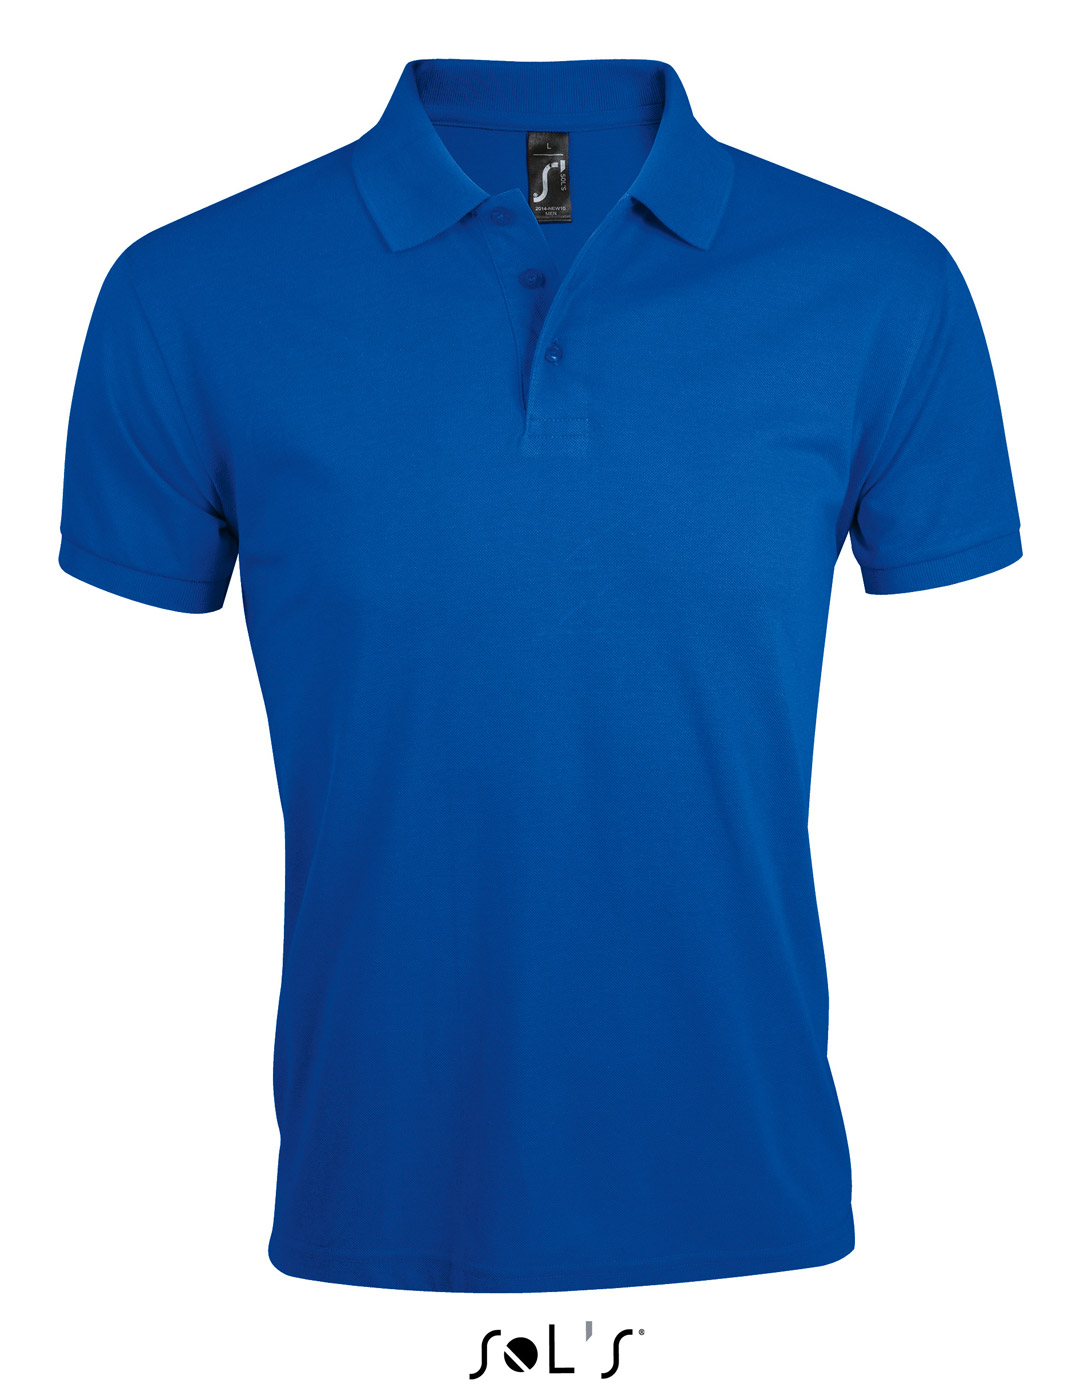 Primemen 00571 royal blue a